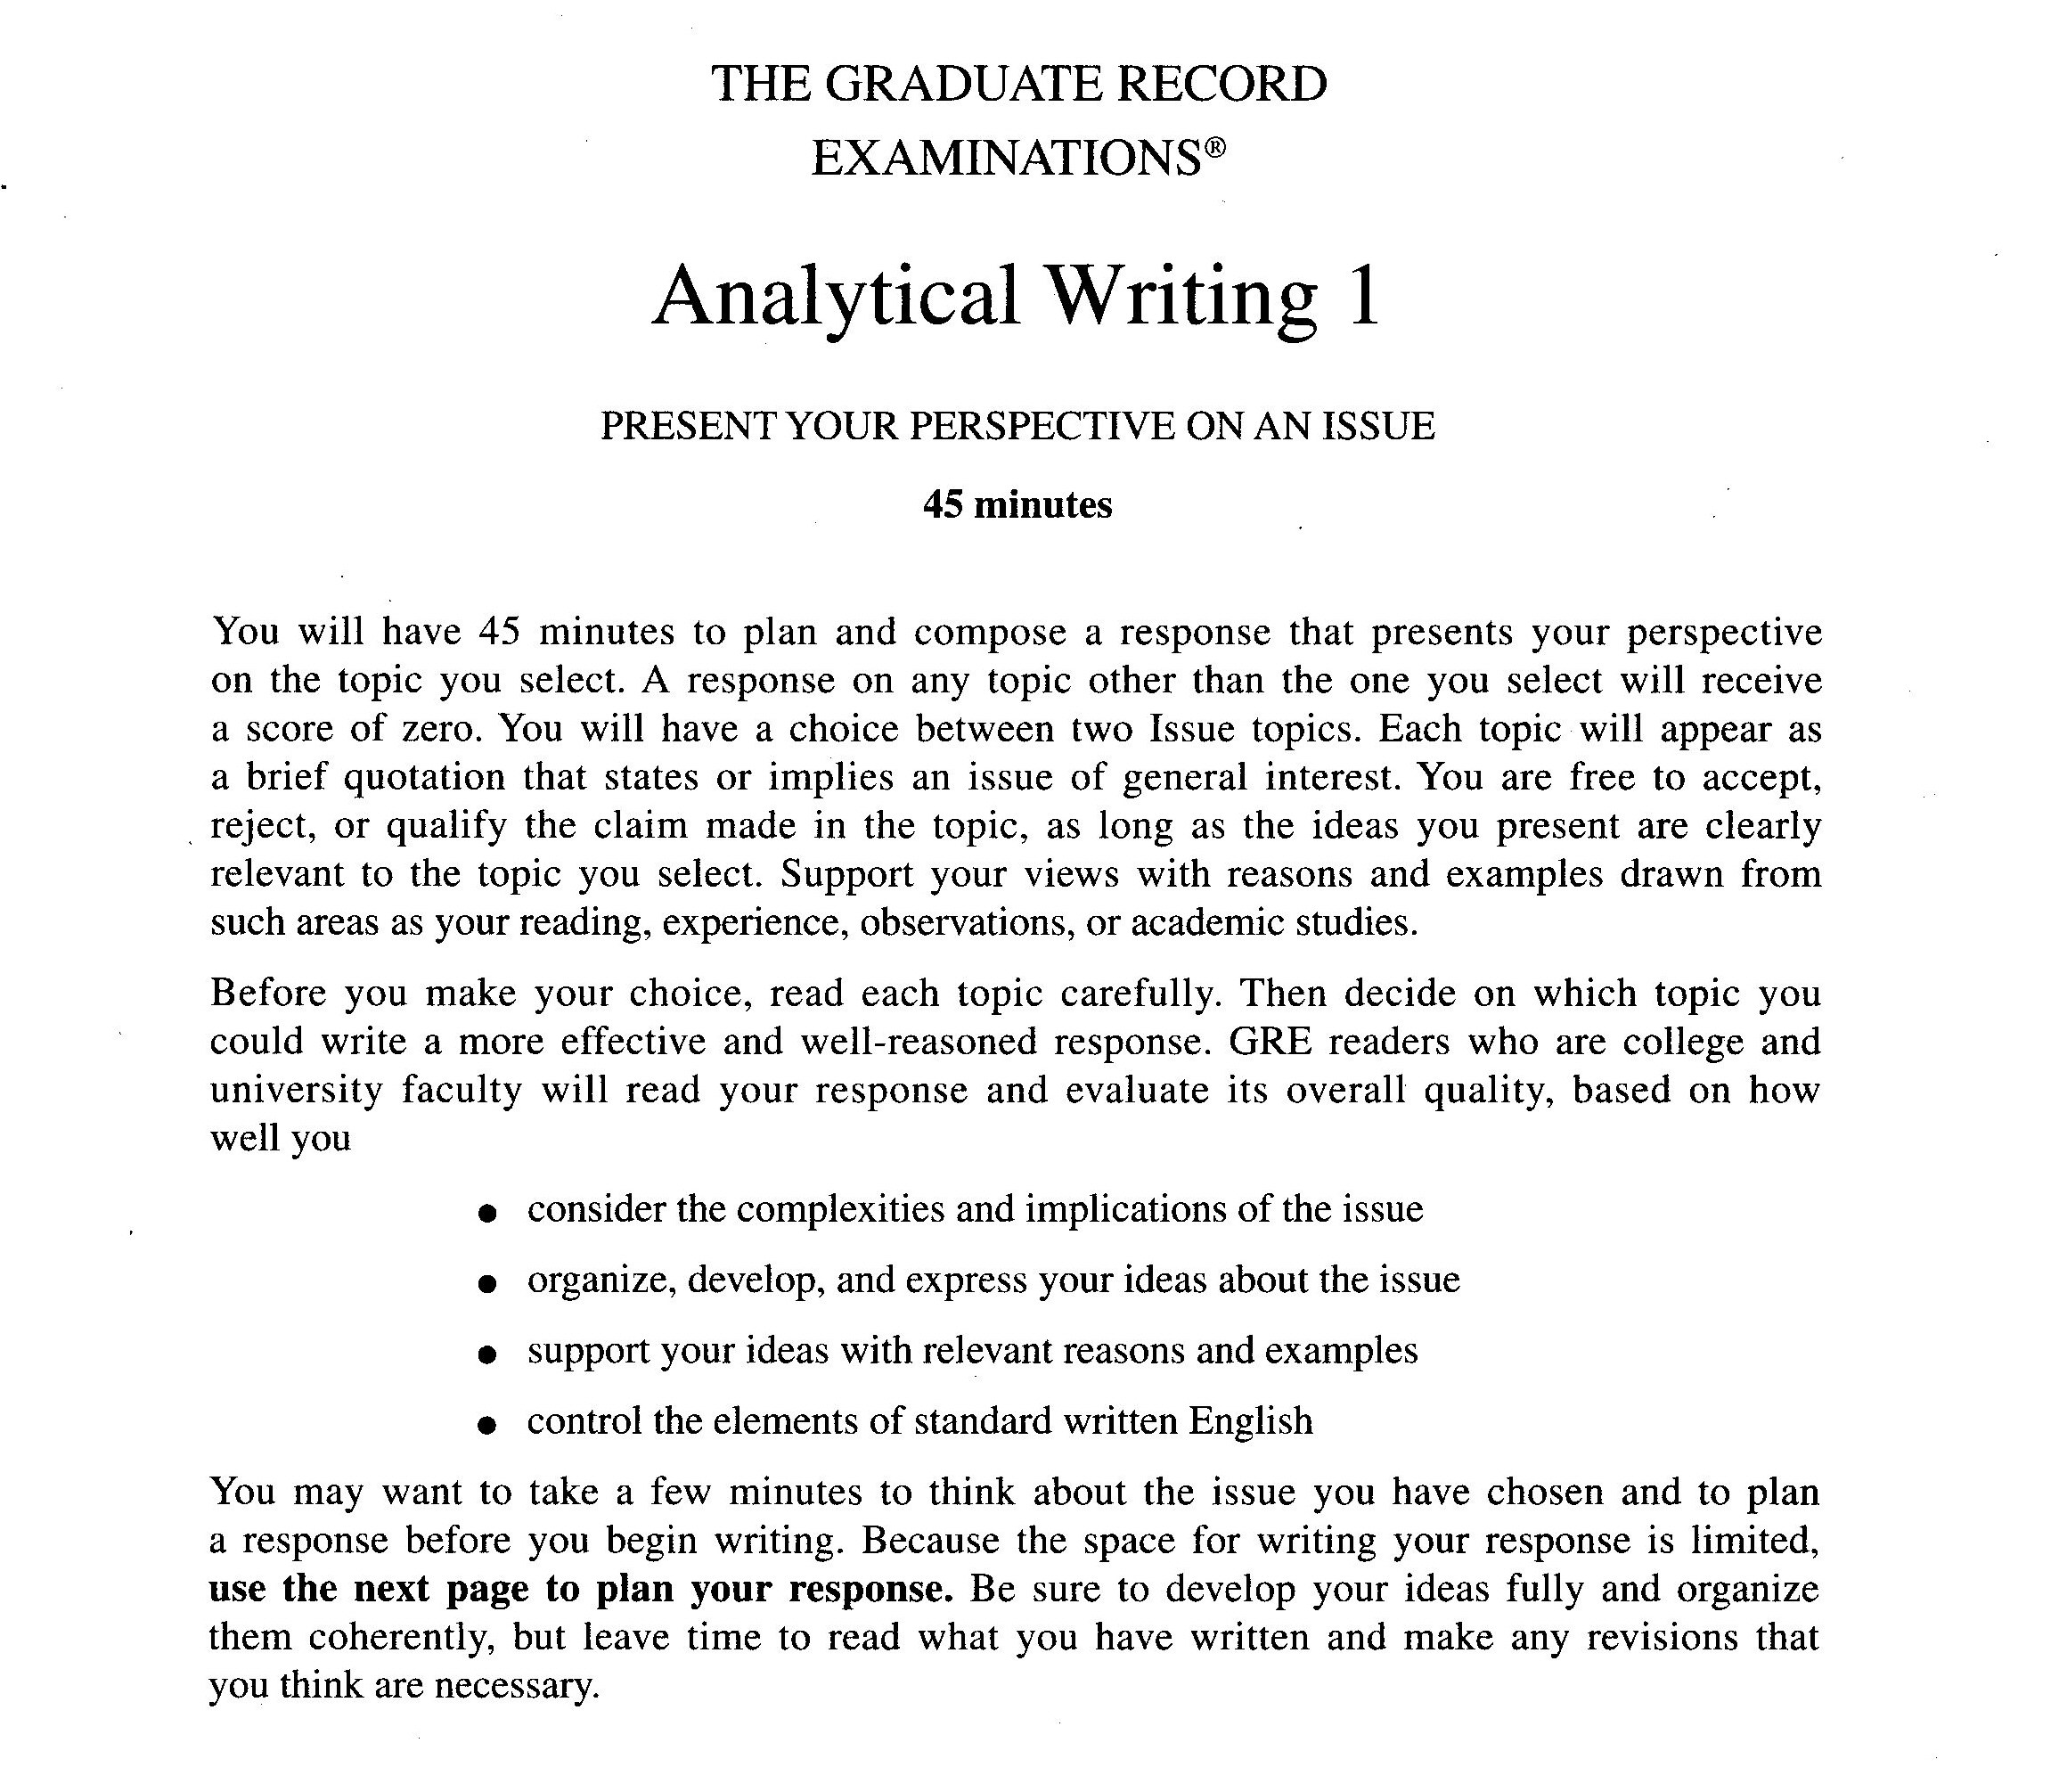 003 Gre Issue Essay Examples Example Stirring Chart To Use Analytical Writing Argument Samples Full